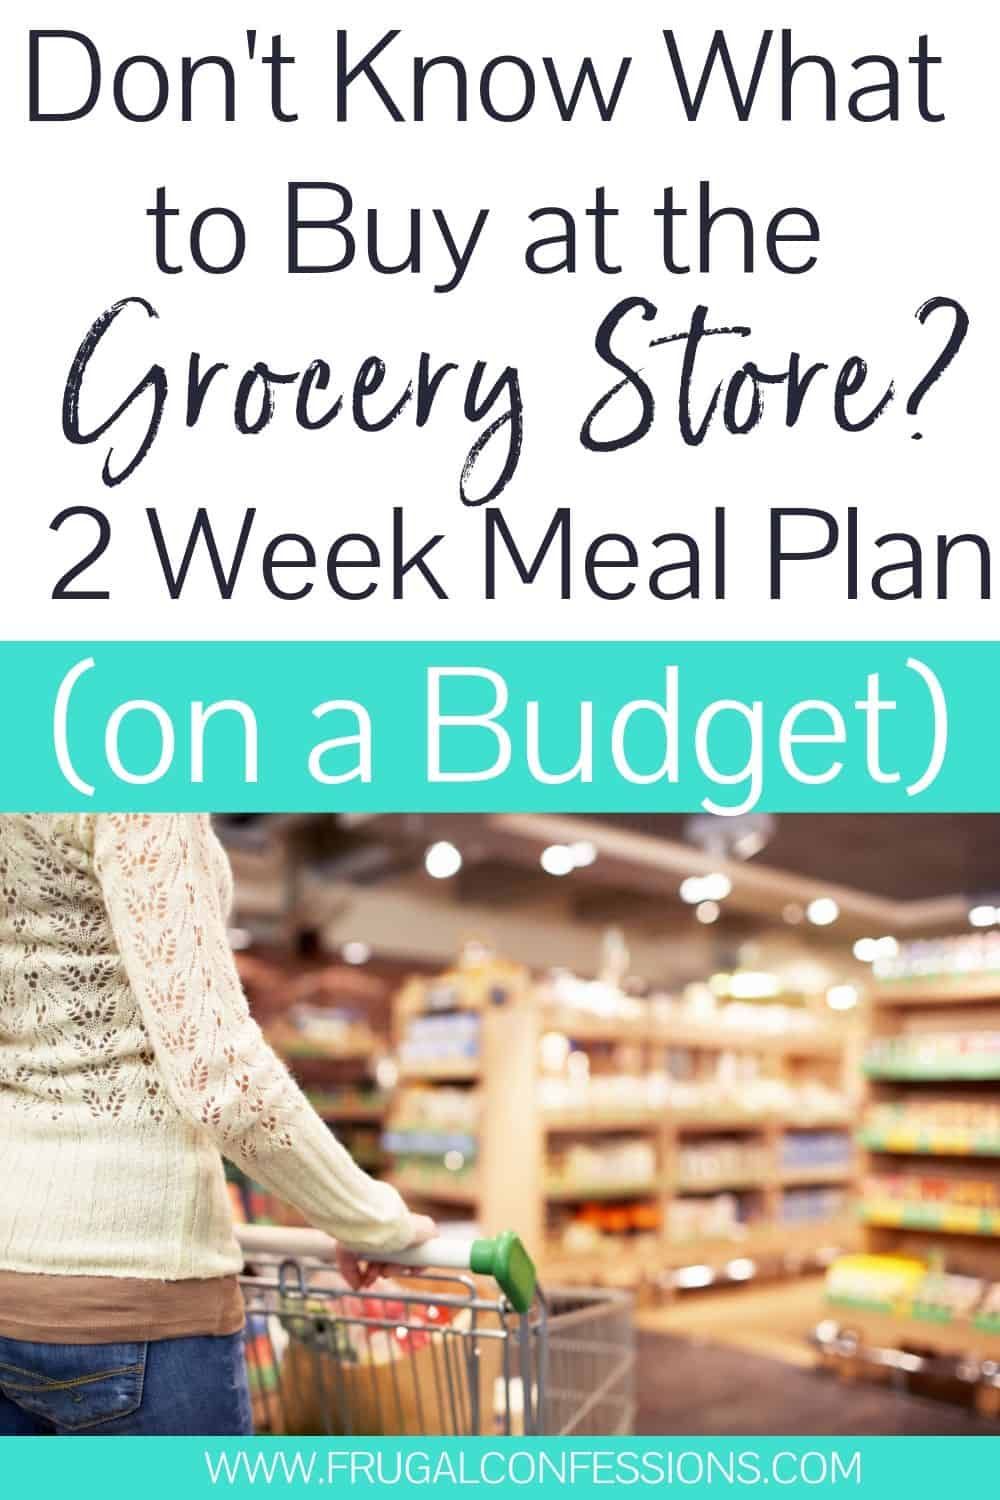 """woman pushing cart through grocery store, text overlay """"don't know what to buy at the grocery store? 2 week meal plan on a budget"""""""